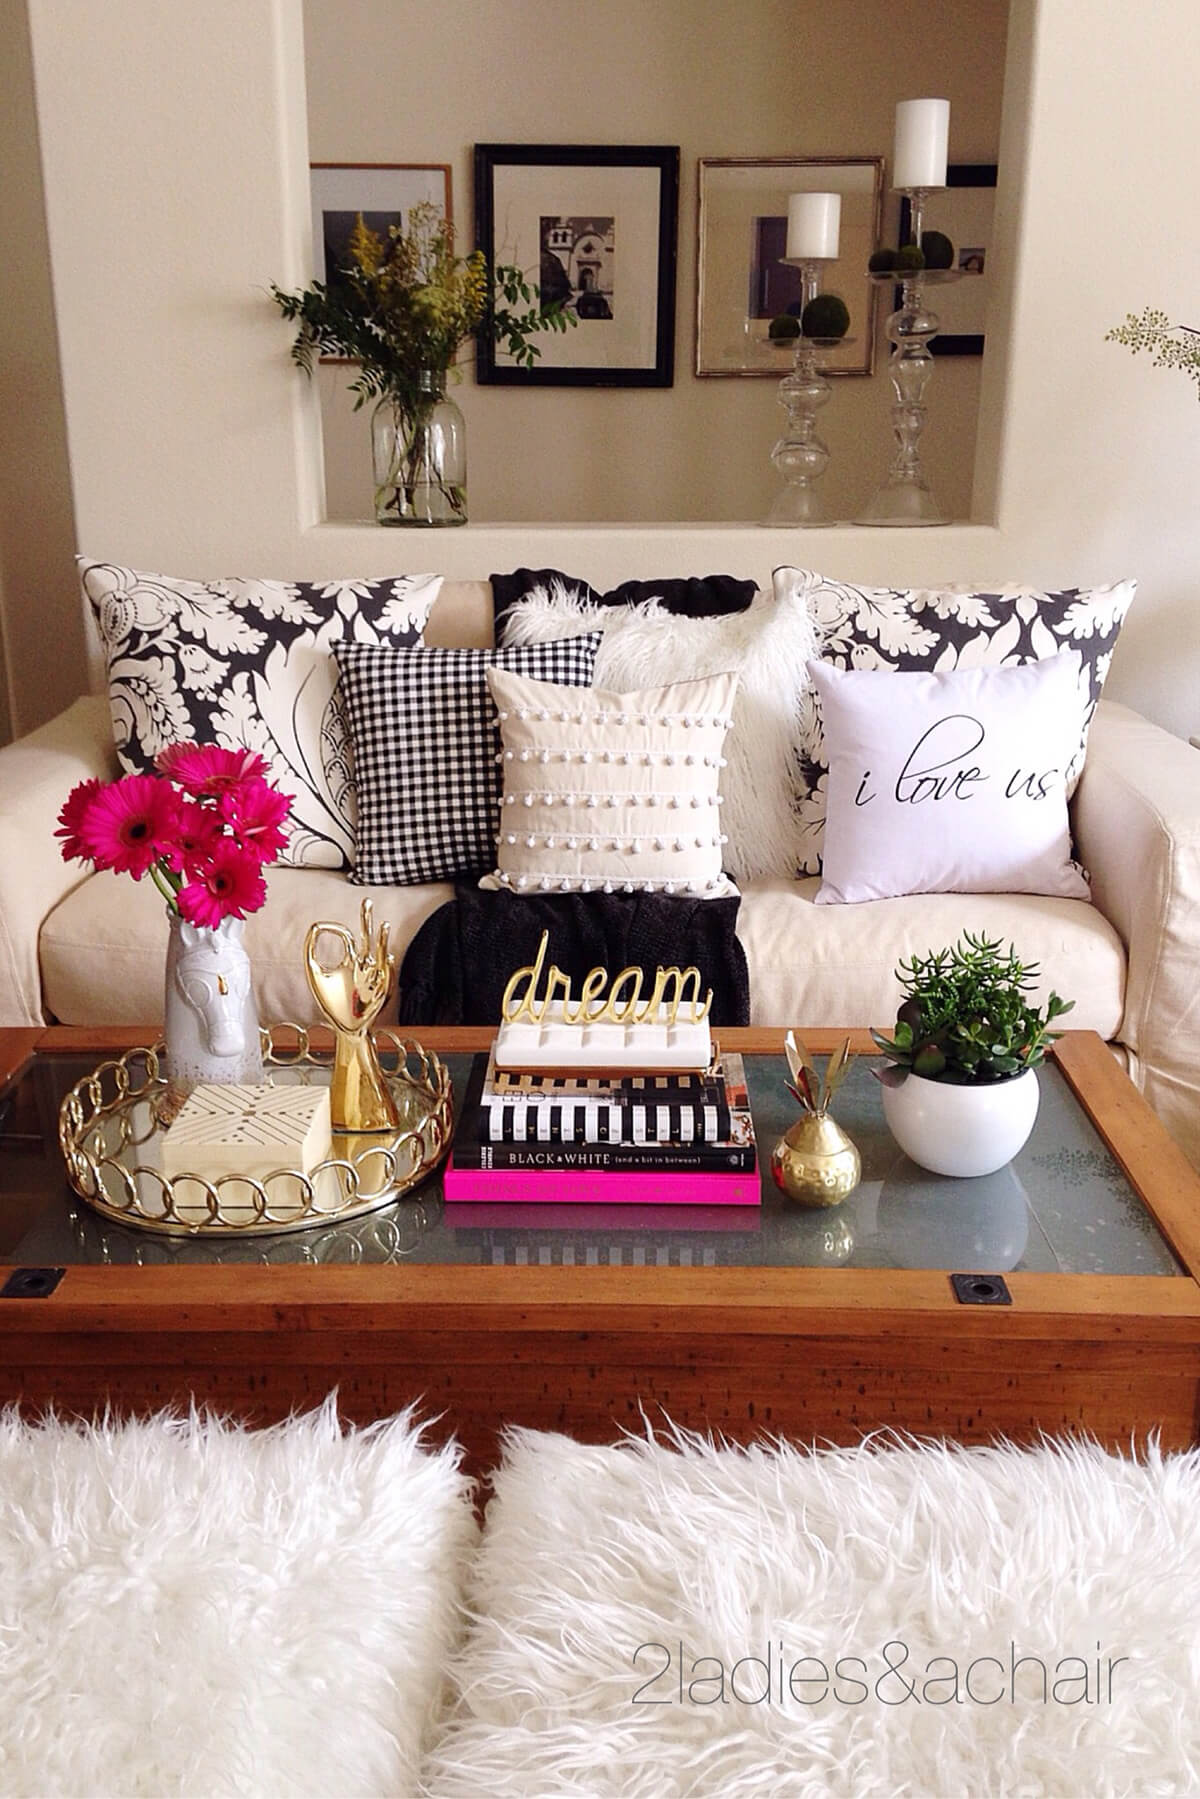 Living room table decorations - Decorate With Style 16 Chic Coffee Table Decor Ideas